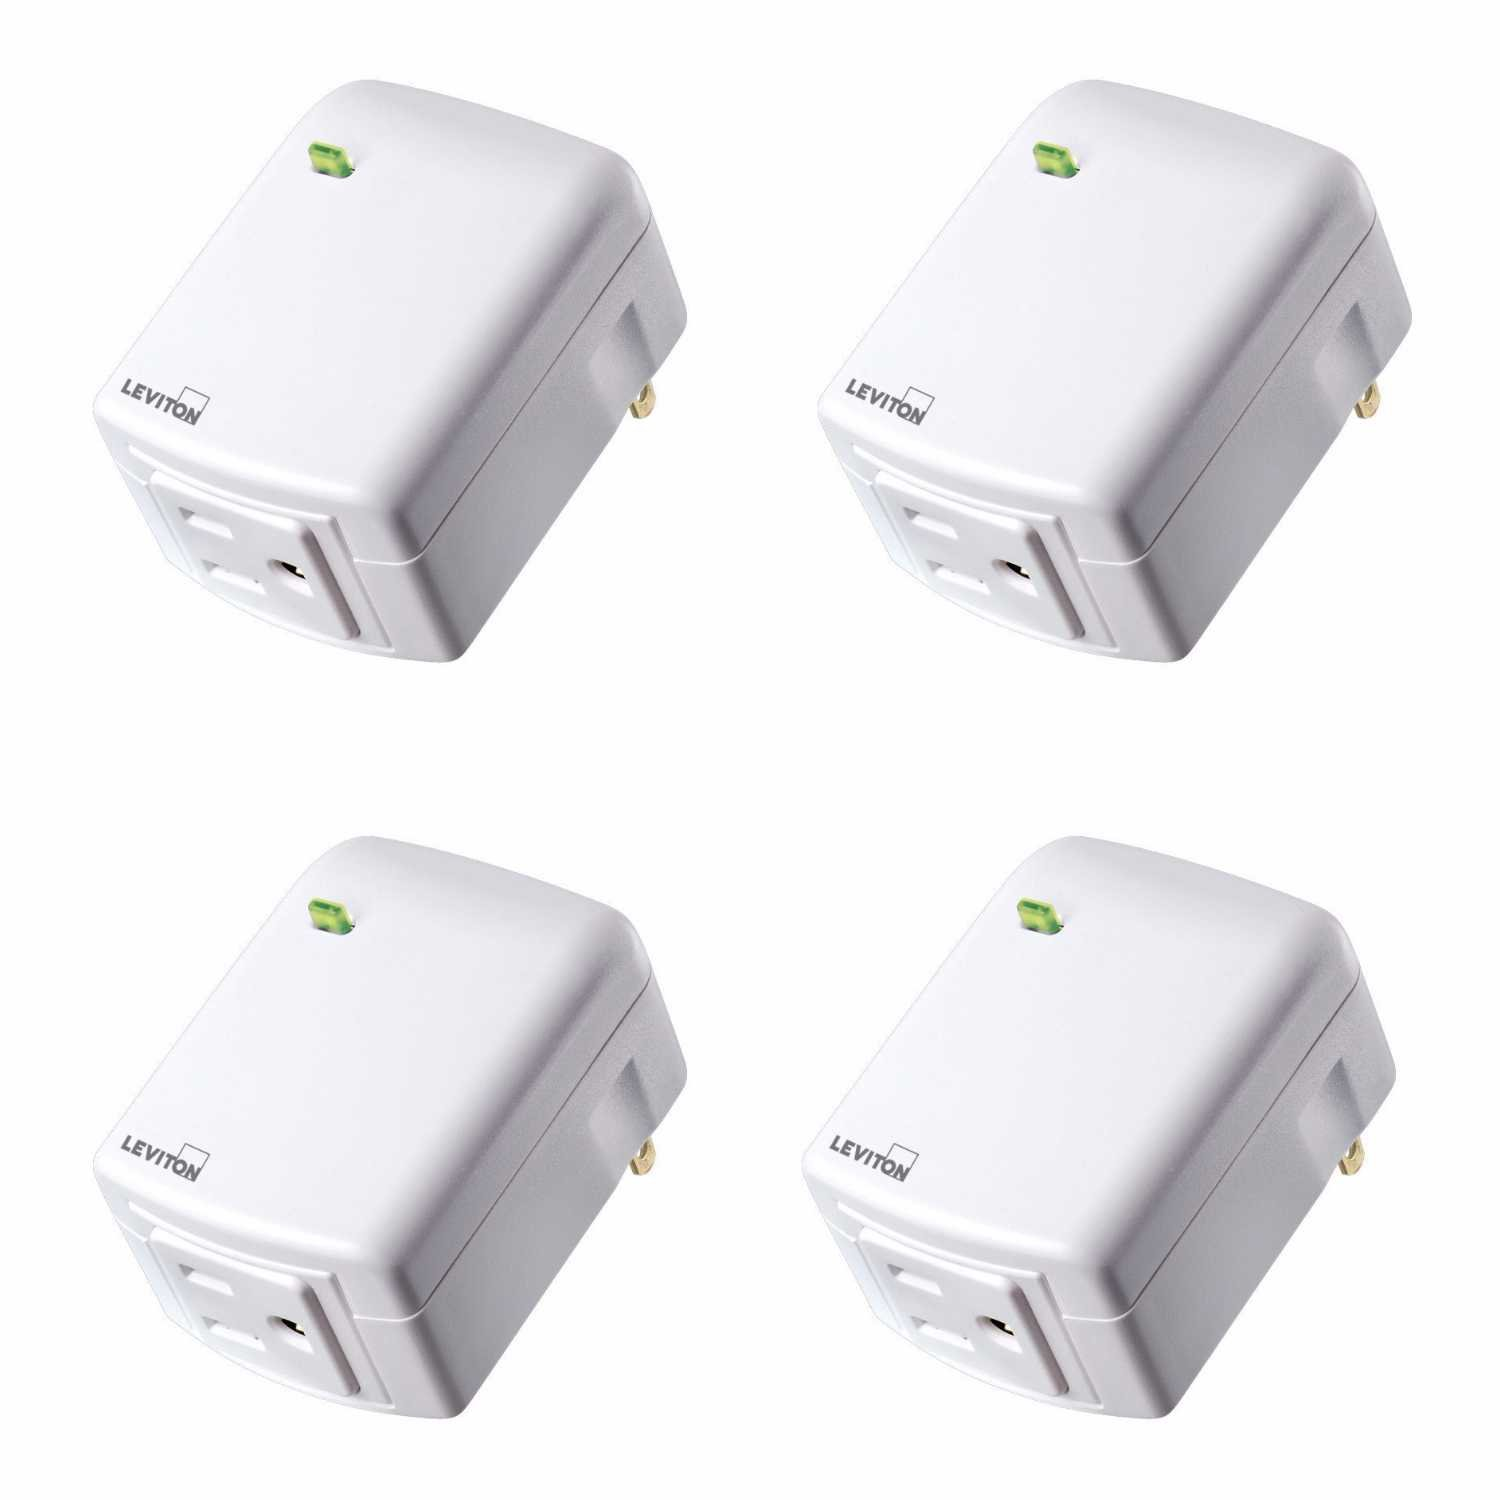 Leviton DZPA1-2BW Decora Smart Plug-in Outlet with Z-Wave Plus Technology (4 Pack)